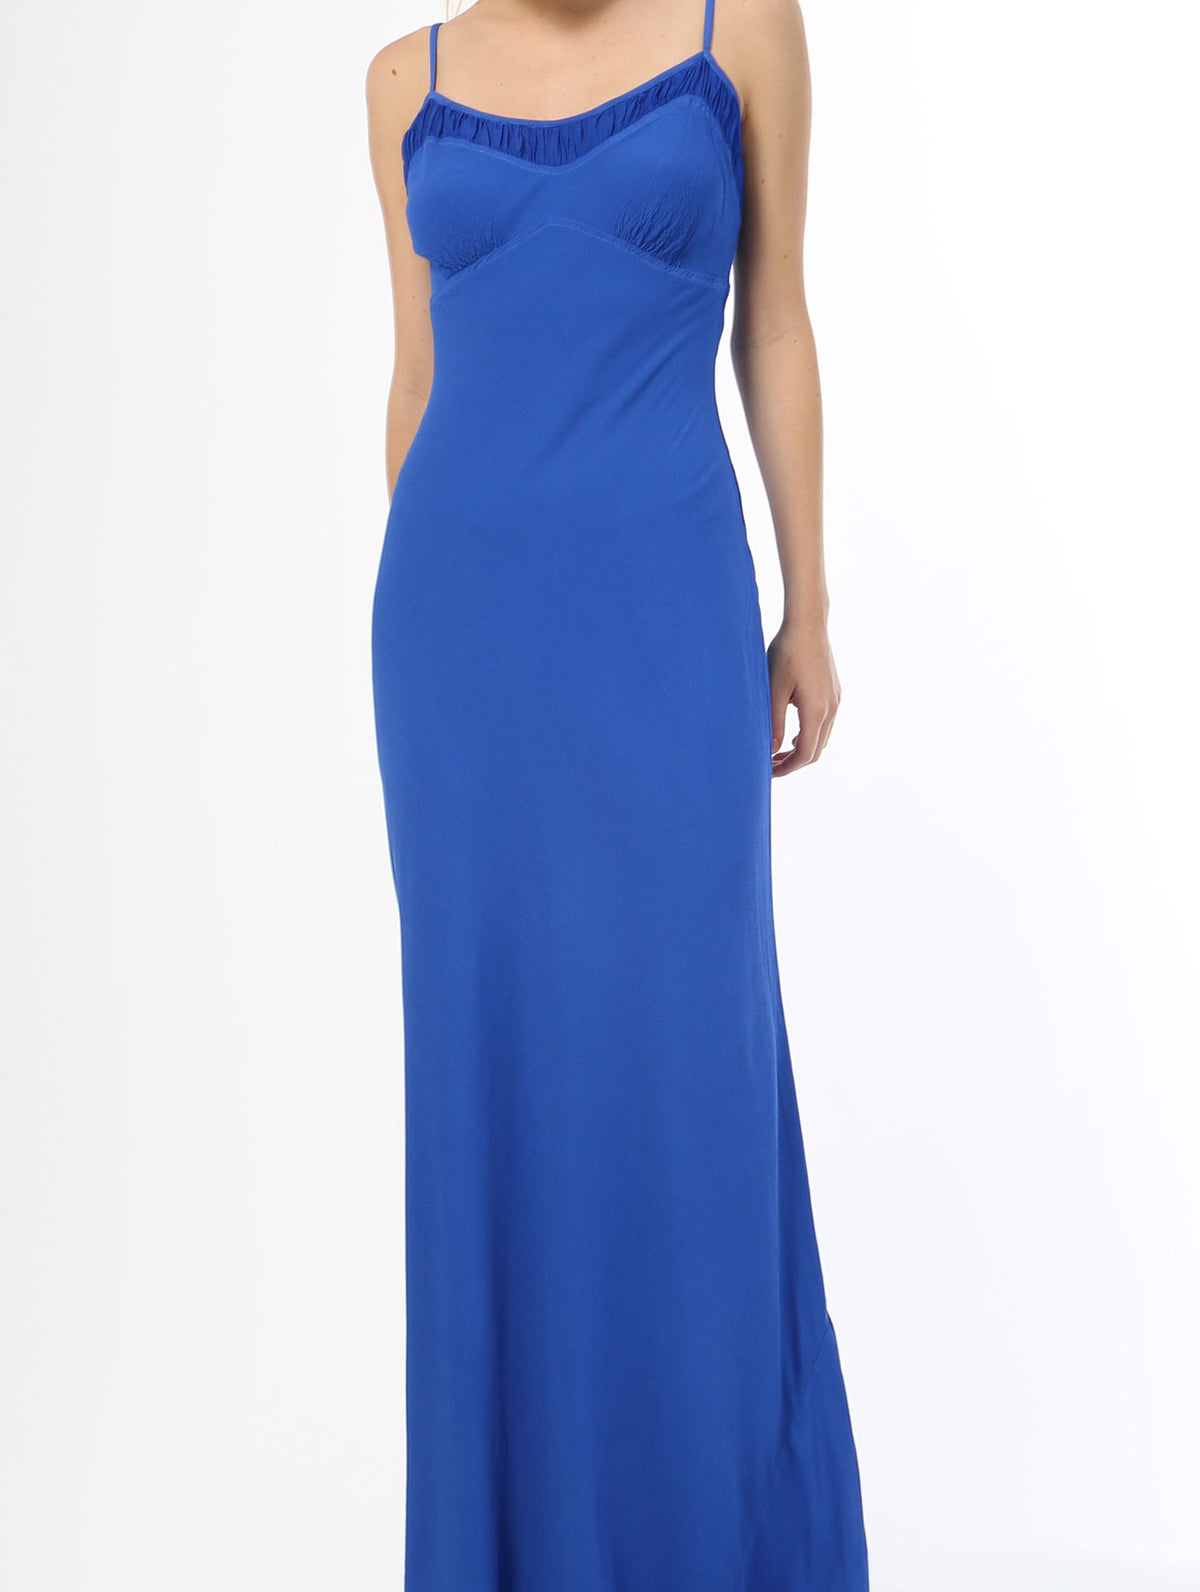 Leona Tank Maxi Dress - Cobalt Blue